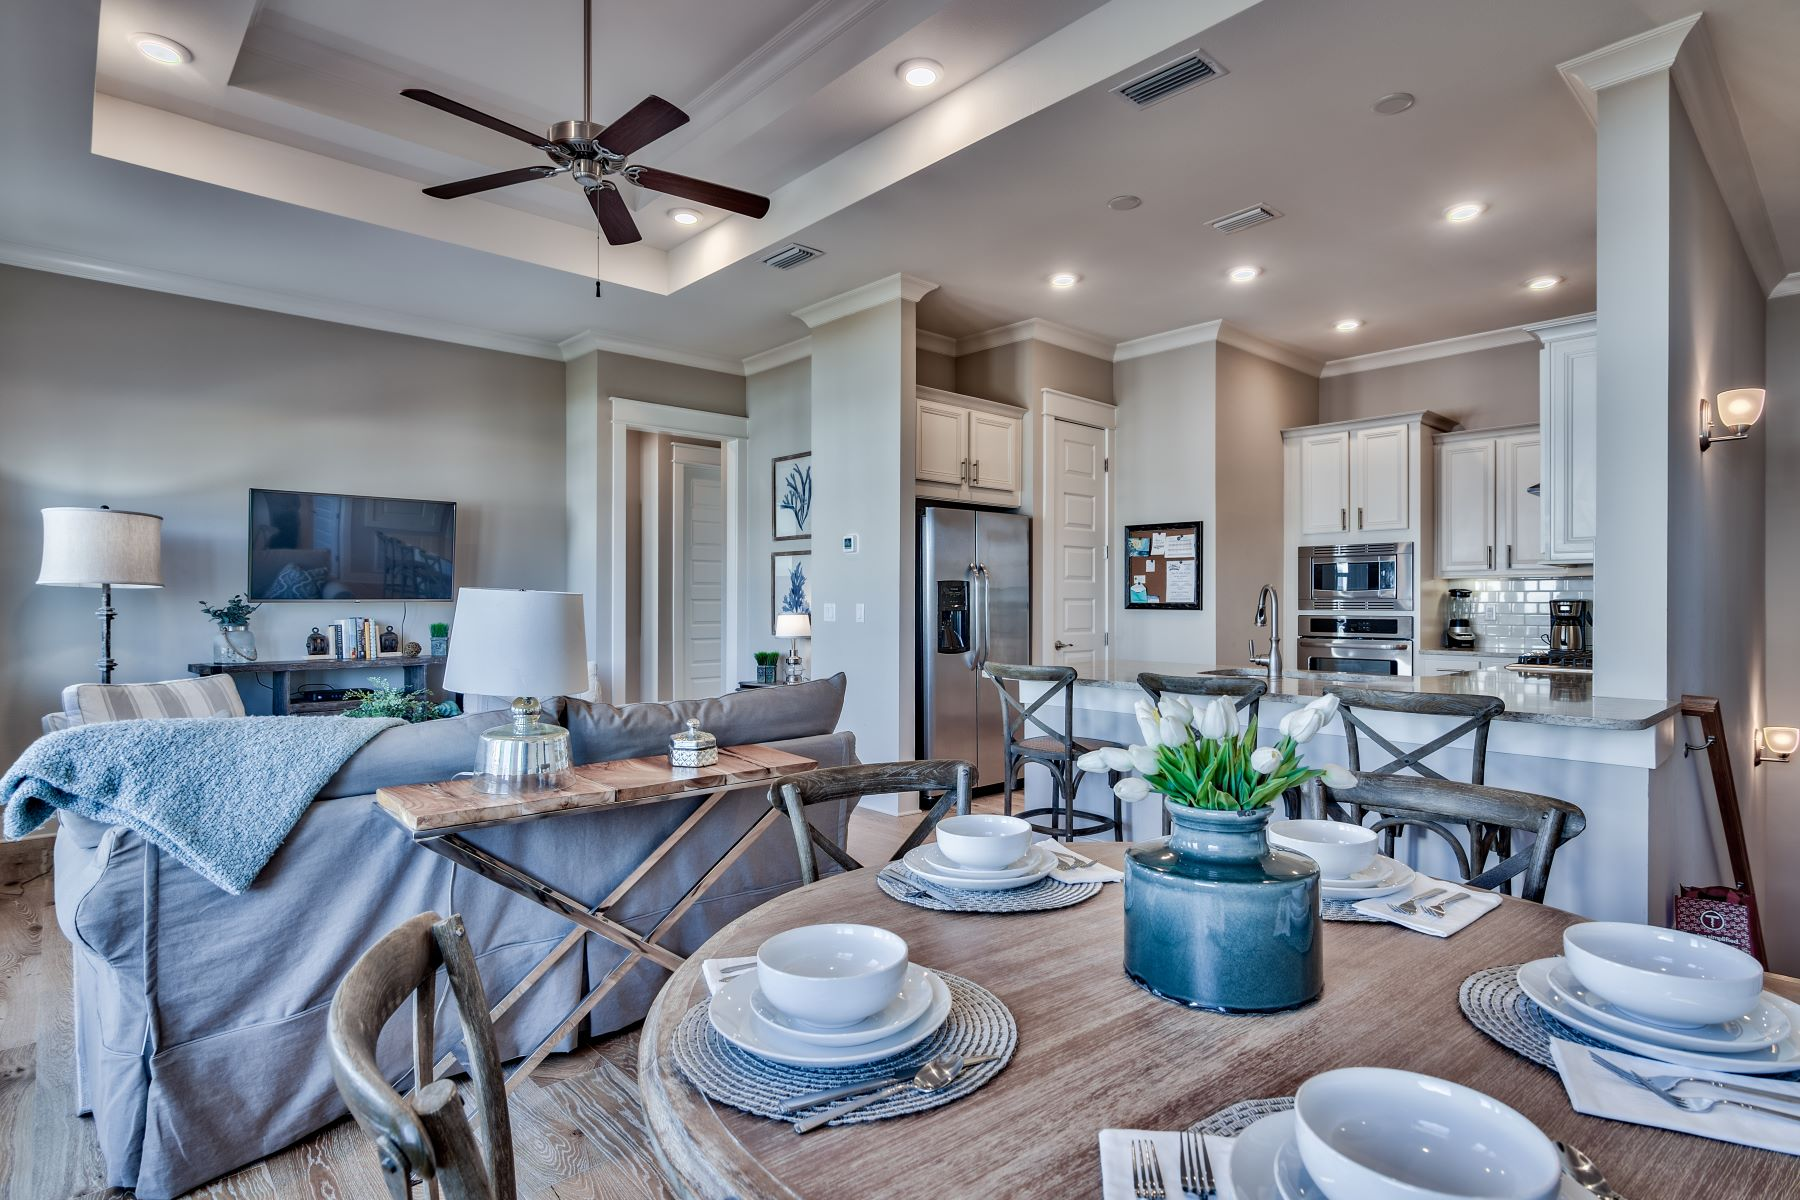 for Sale at Sophisticated Beach Styled Condo Fully Furnished in Prominence 34 Pine Lands Loop C Inlet Beach, Florida 32461 United States